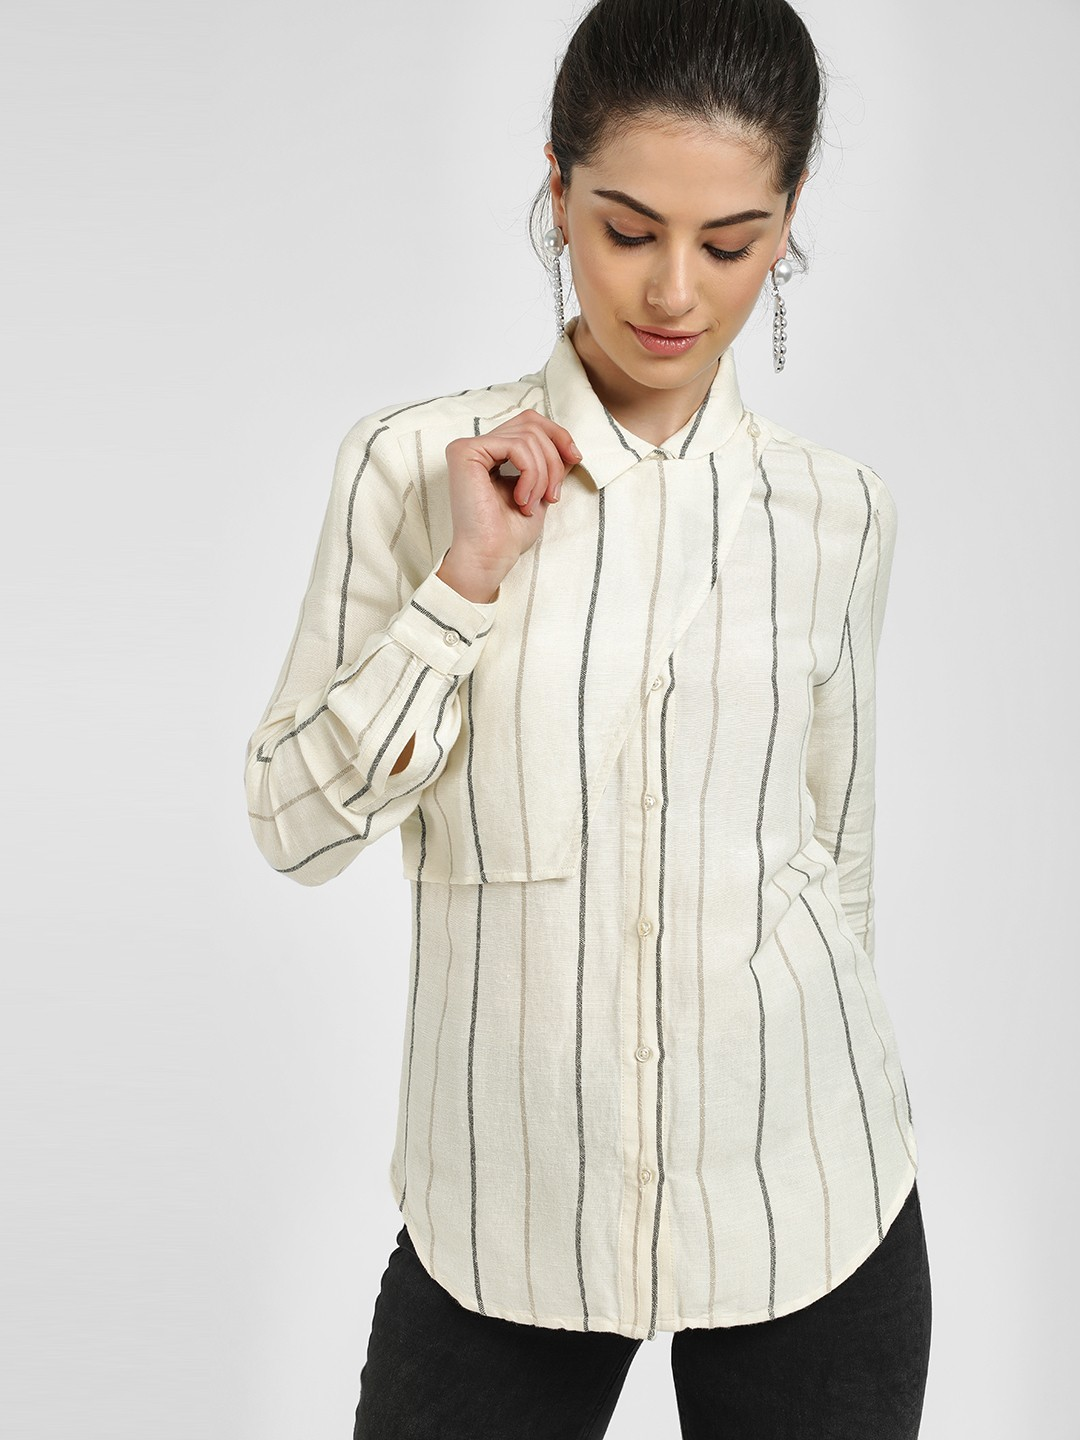 PostFold Off-White Overlay Panelled Stripes Shirt 1